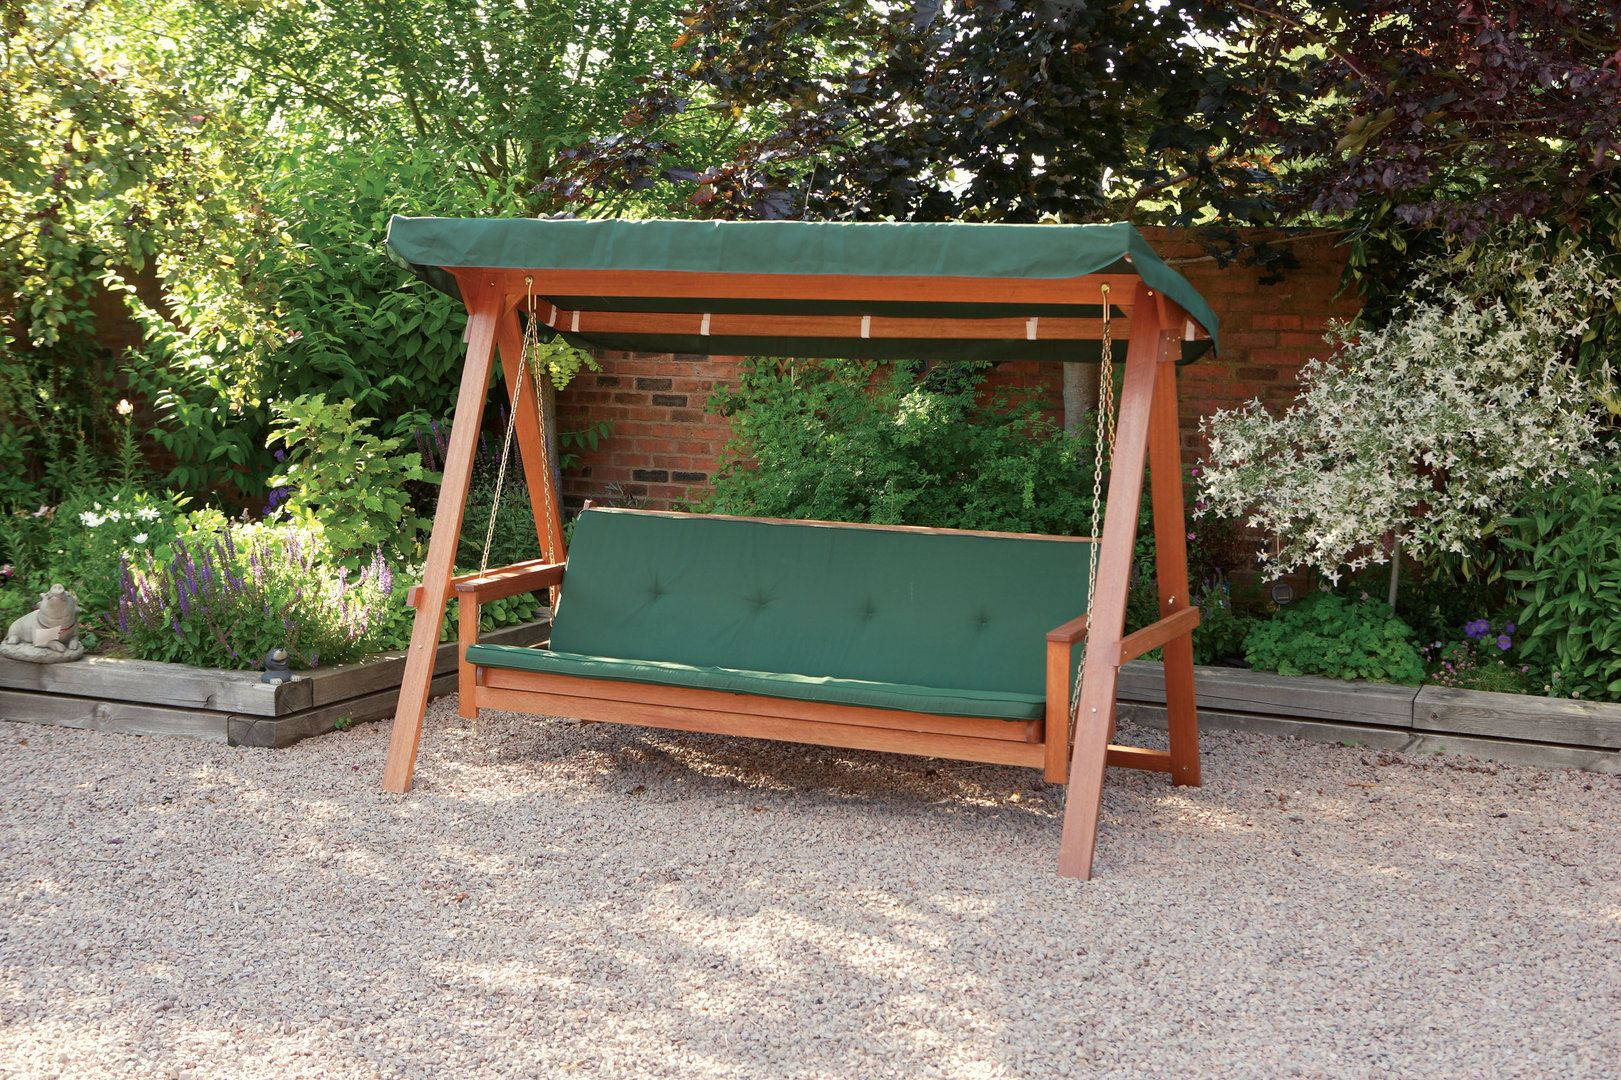 Quality Wooden Swing Bed 3 Seater Garden Swing Seat With Cushions Uk Home Improvement